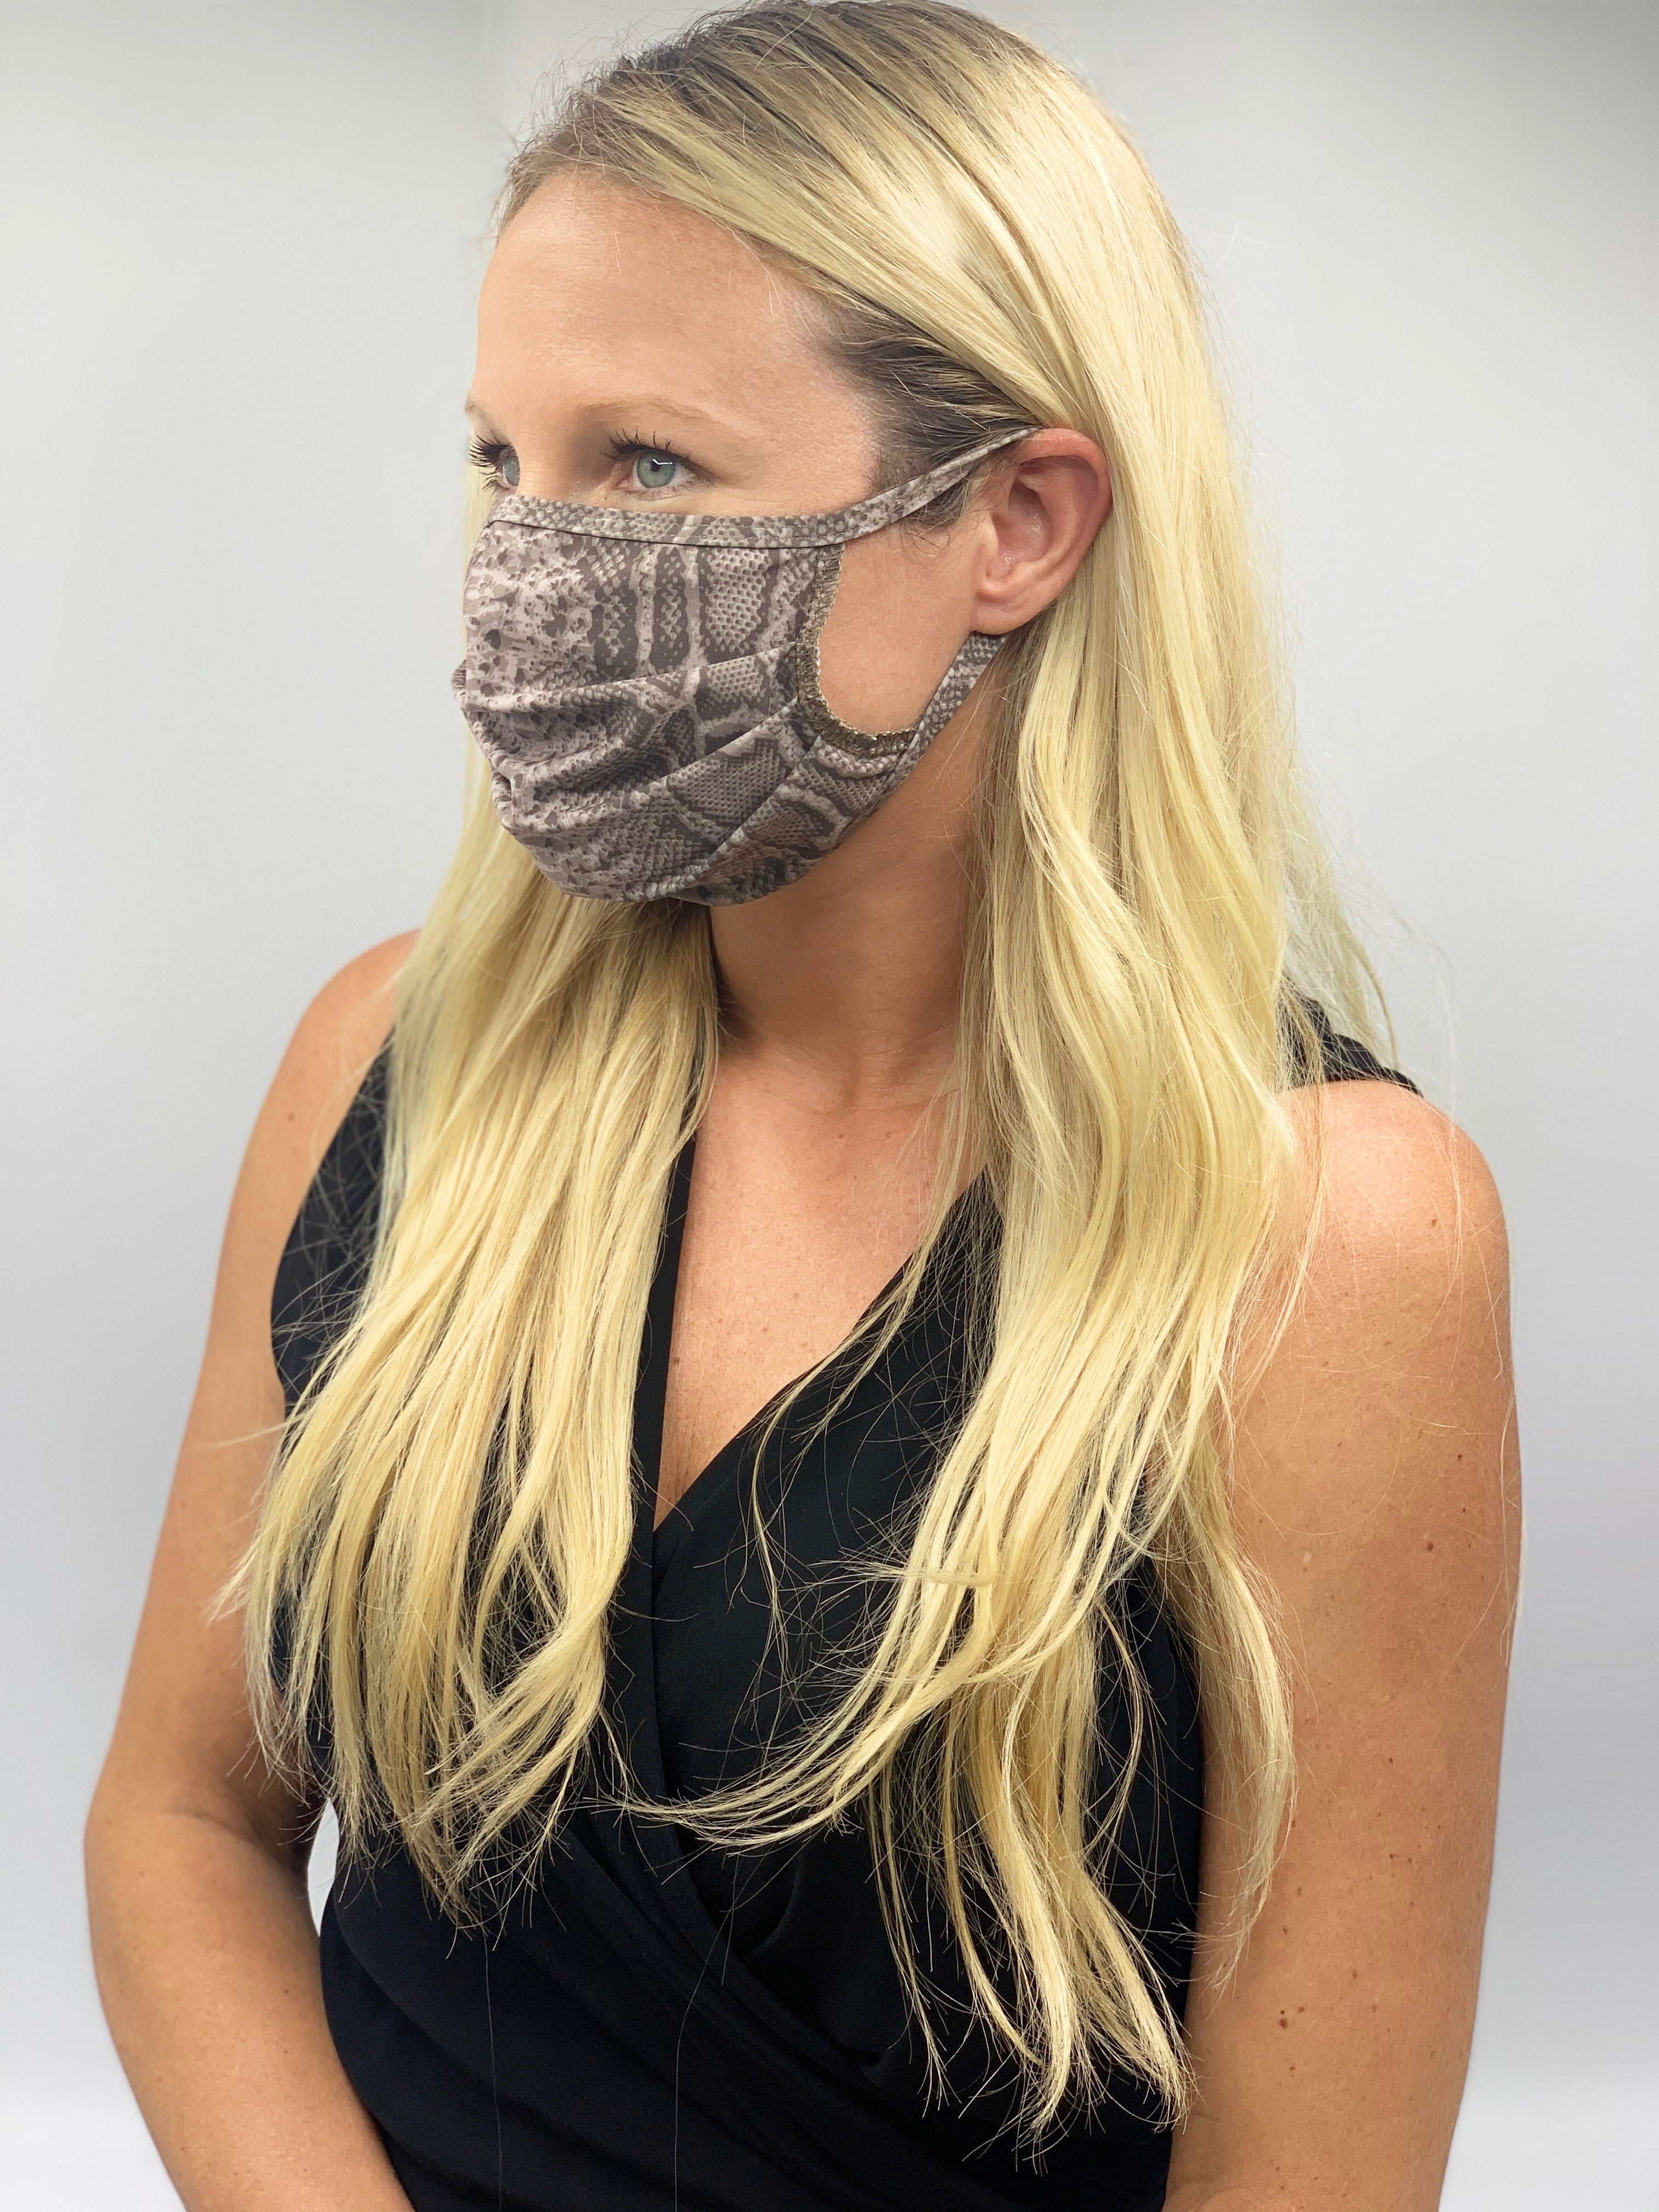 ANIMAL PRINT FACE MASK 8 PACK - FINAL SALE